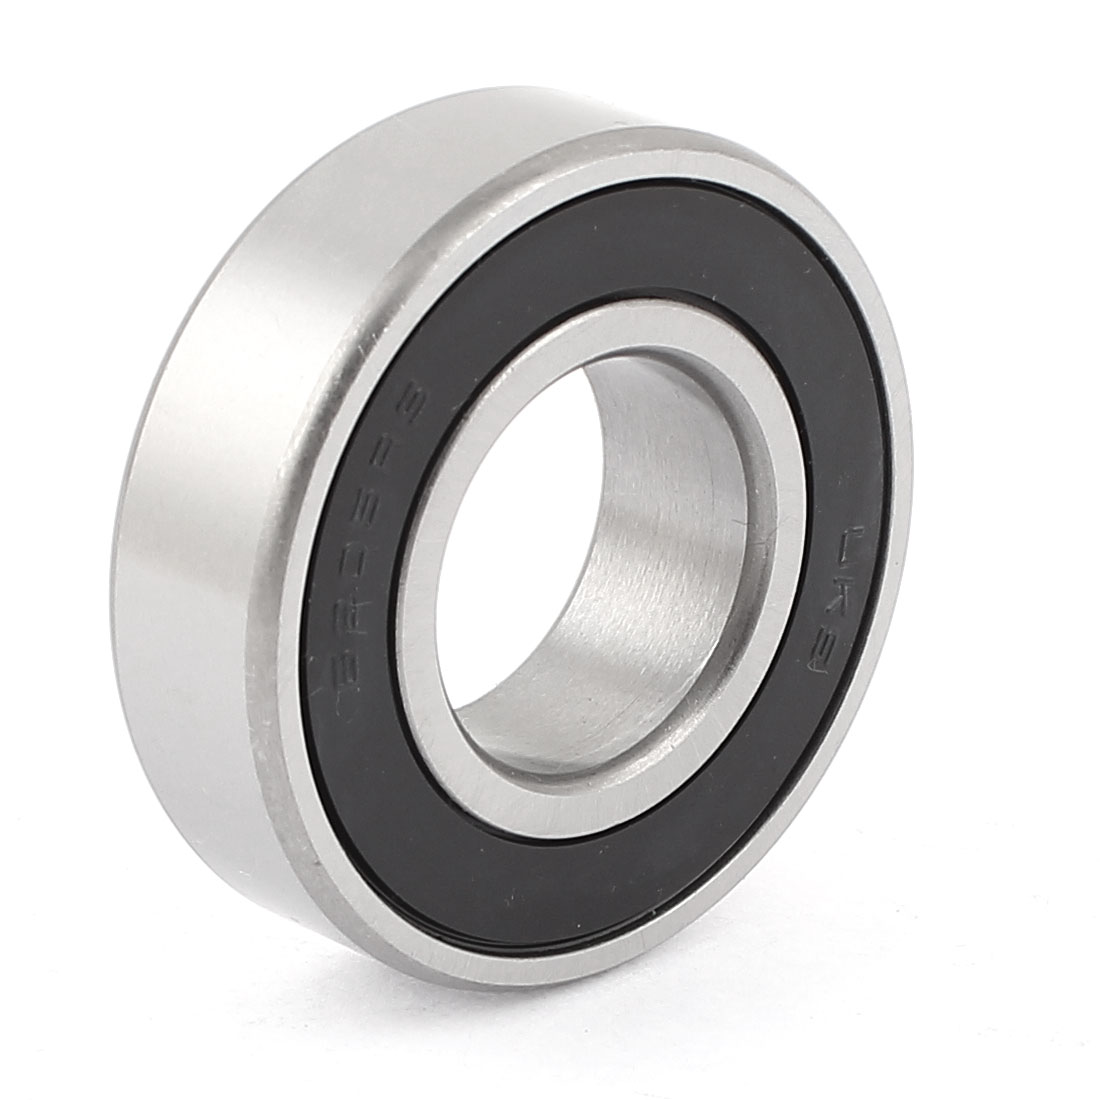 6205RS 52mm x 25mm x 15mm Round Sealing Single Row Deep Groove Ball Bearing for Electric Motor